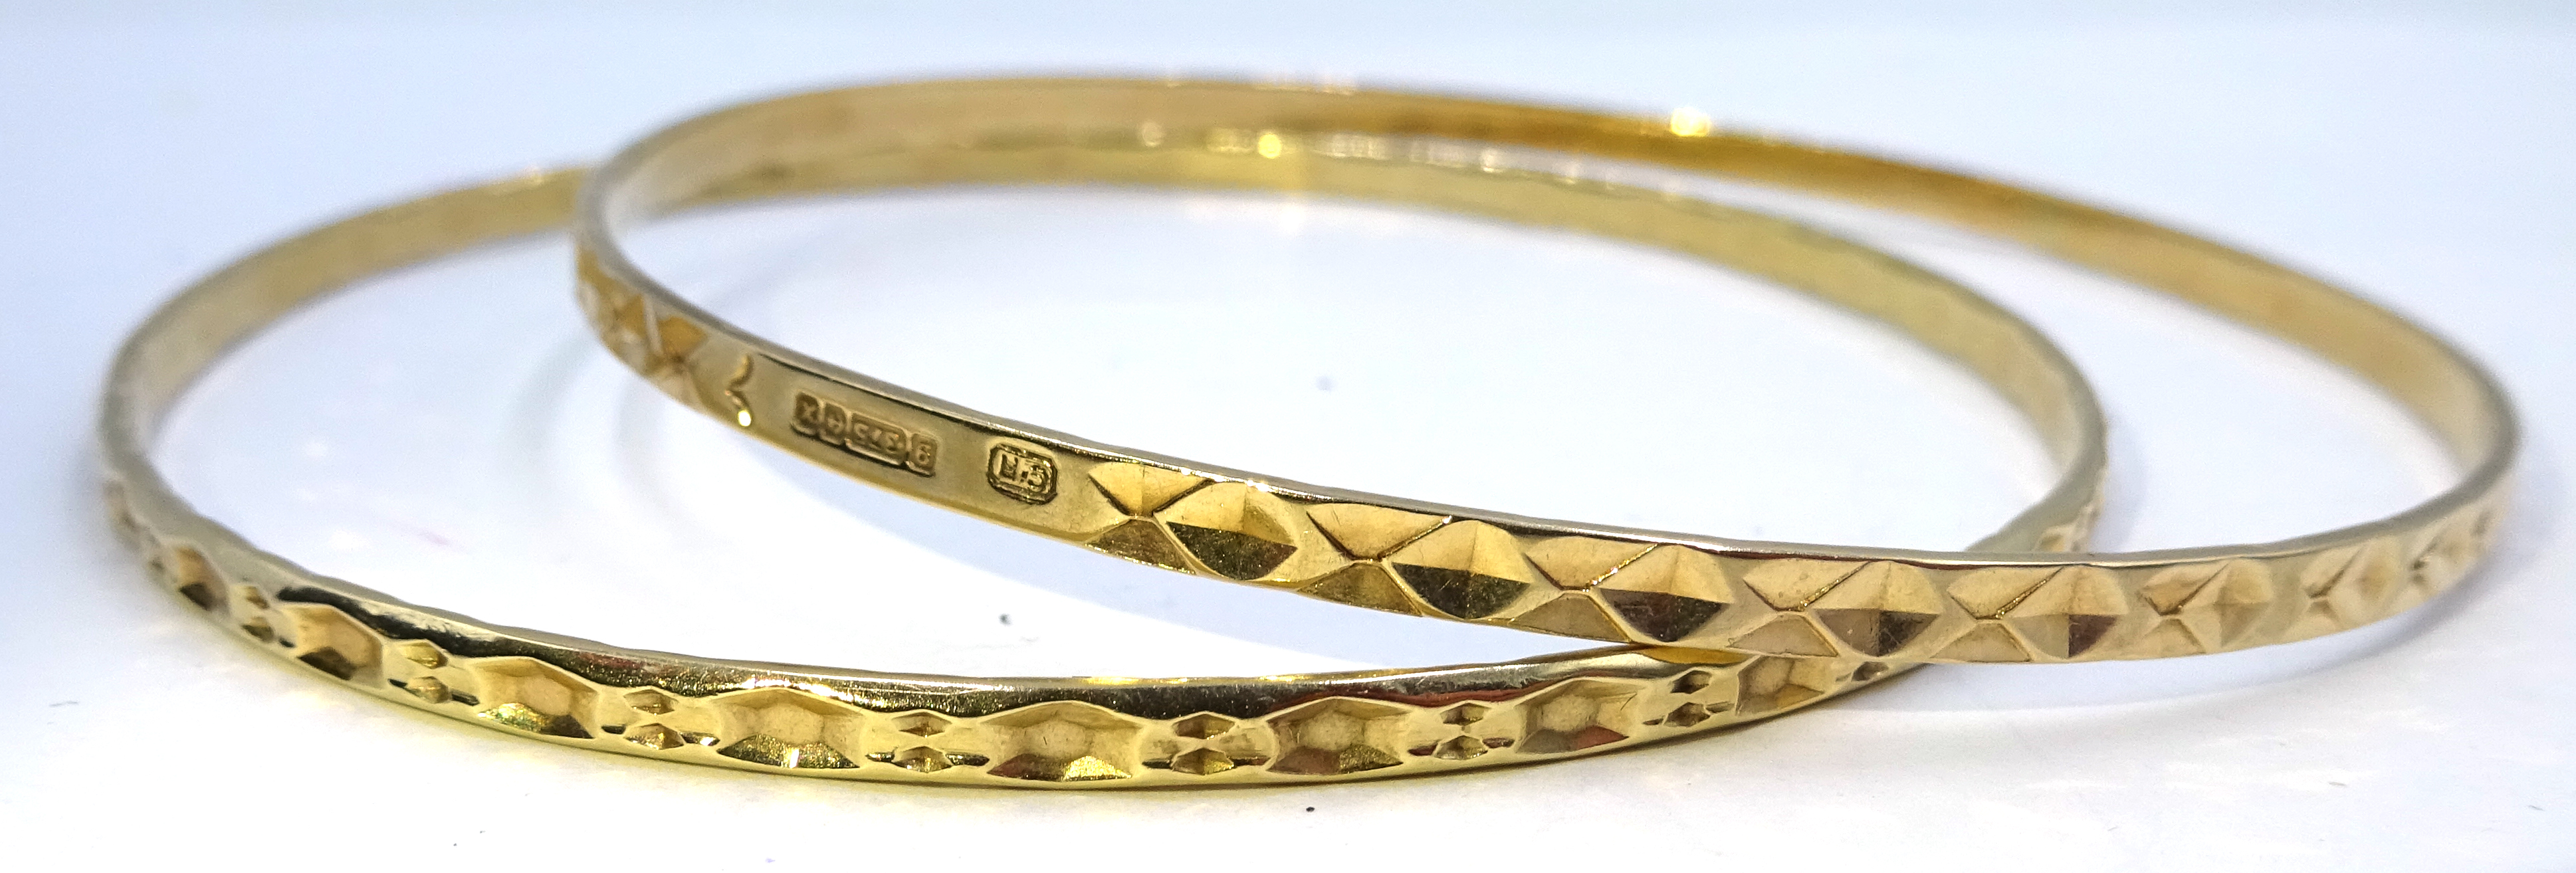 Lot 1025 - Two 9ct gold bangles hallmarked, approx 11.